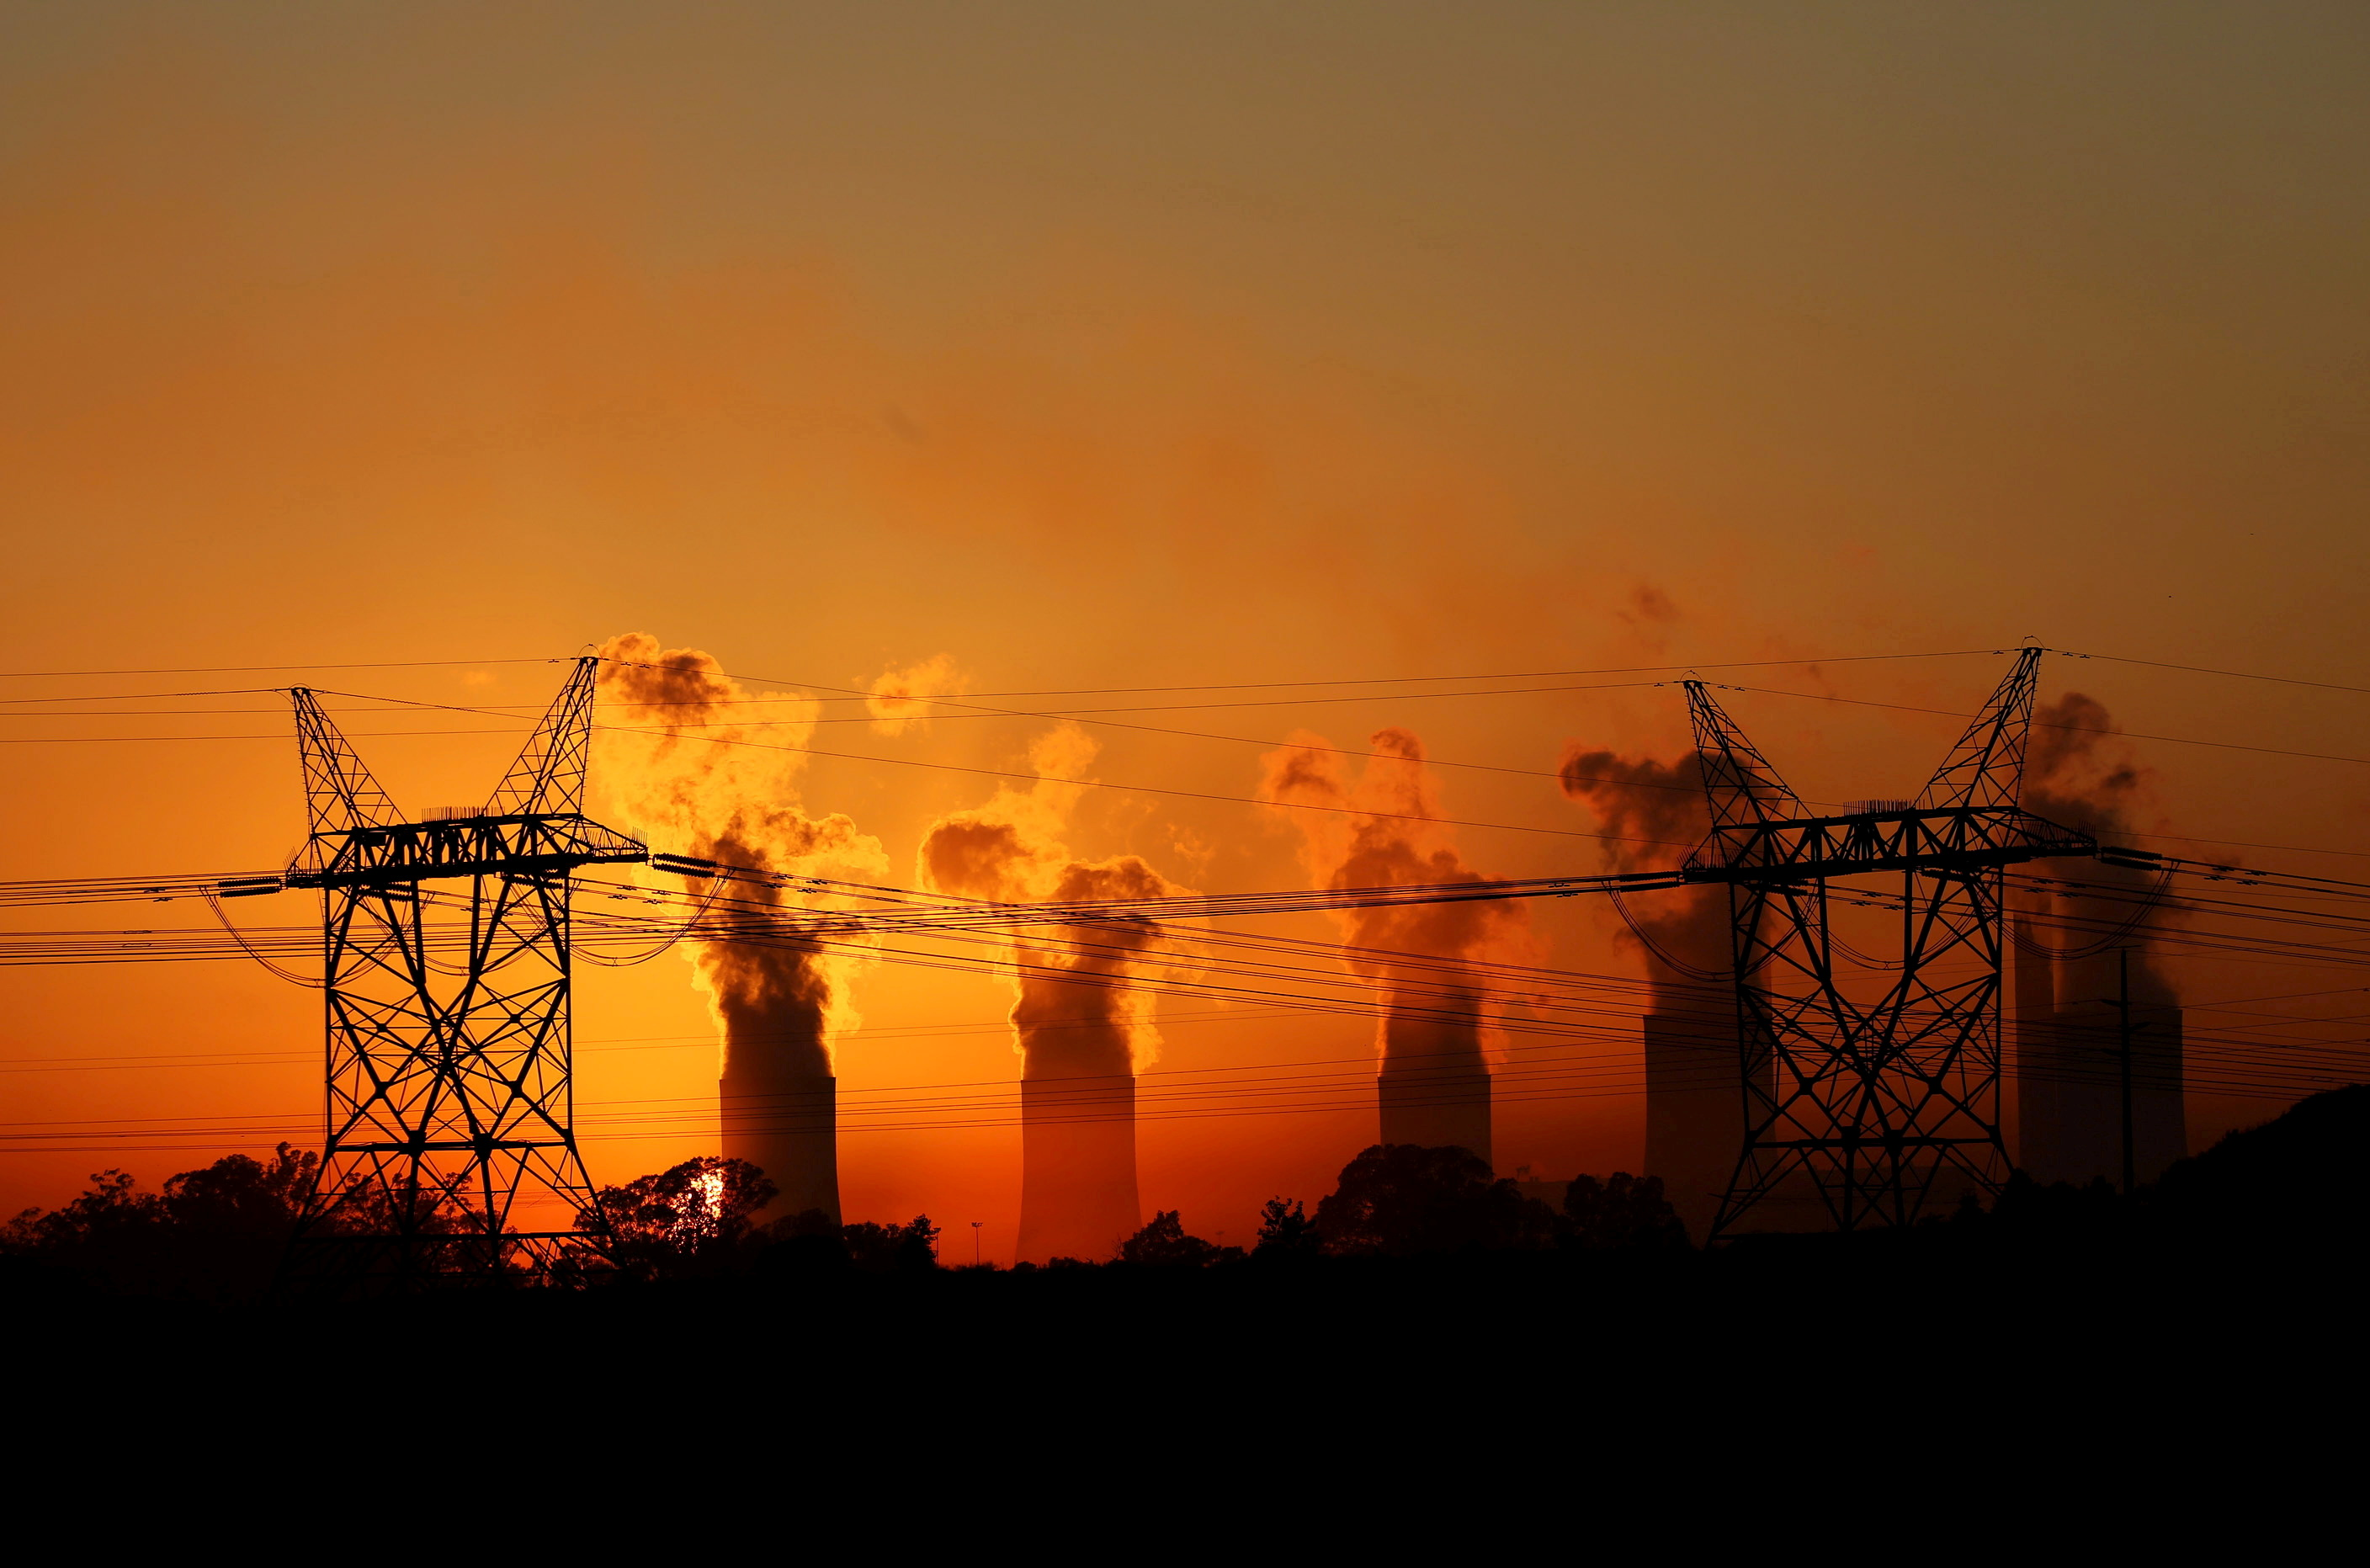 Electricity pylons are seen in front of the cooling towers at the Lethabo Thermal Power Station, an Eskom coal-burning power station near Sasolburg in the northern Free State province, March 2, 2016.  REUTERS/Siphiwe Sibeko/File Photo